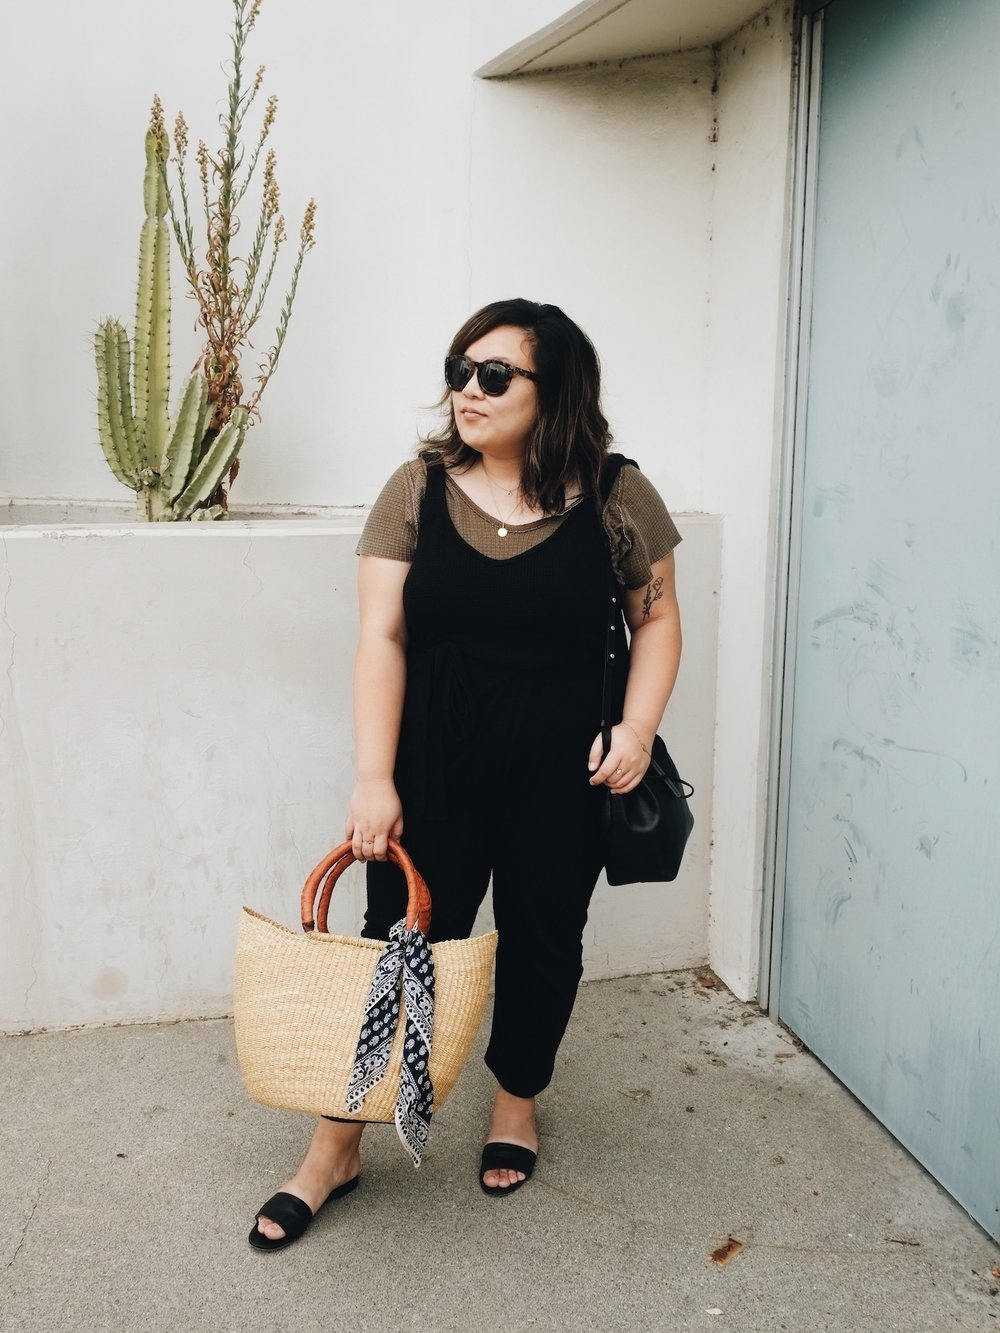 Farmers market outfit // A Week Of Minimalist Uniform Outfits With Jasmine Hwang From The Pleb Life on The Good Trade